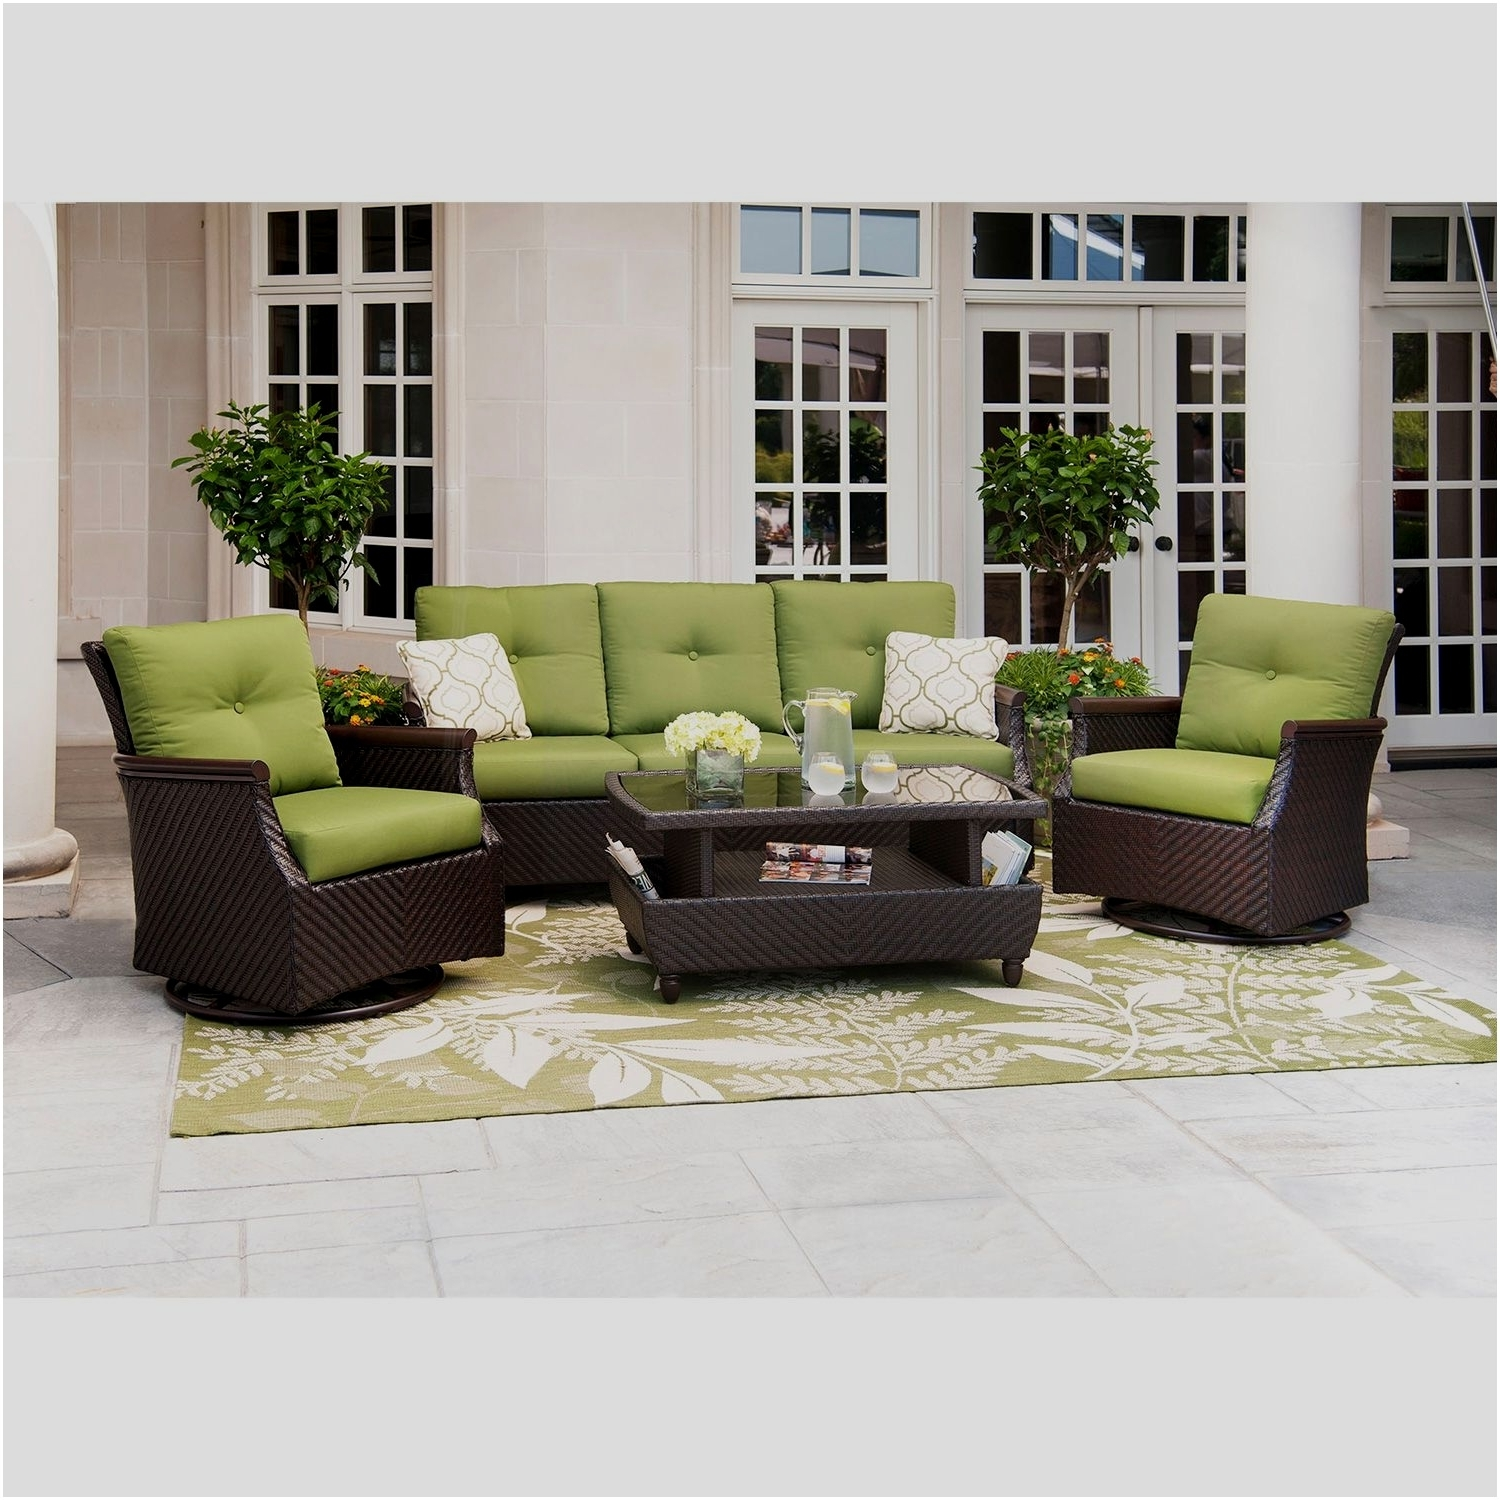 Patio Conversation Sets For Small Spaces In 2019 Beautiful Small Space Patio Furniture Sets – (View 17 of 20)